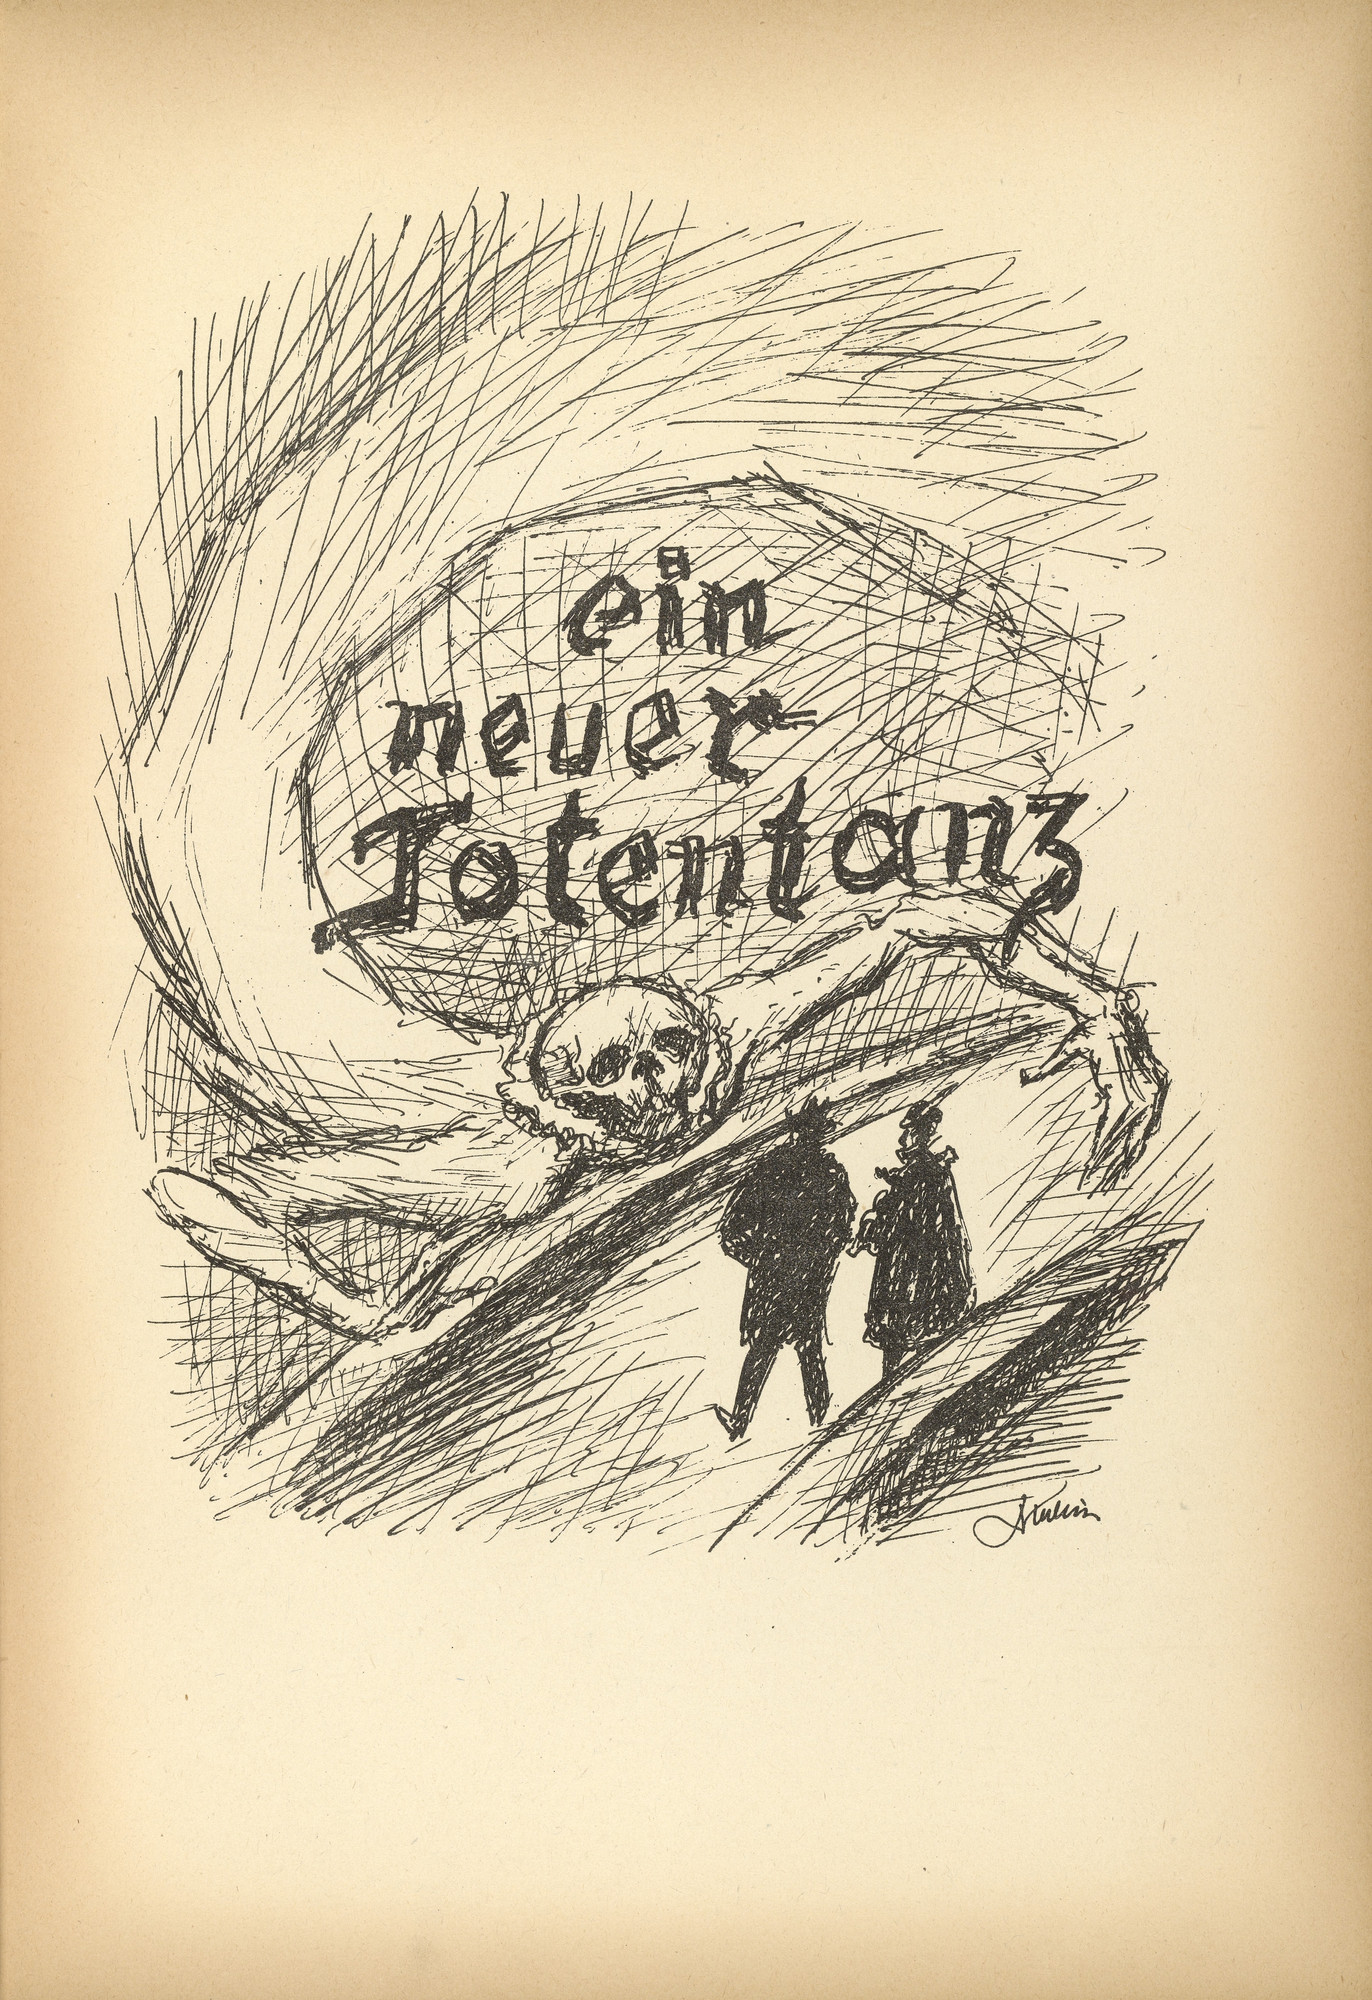 Alfred Kubin. The Comet (Der Komet) from Ein neuer Totentanz (A New Dance of Death). 1947 (reproduced drawing executed 1938)